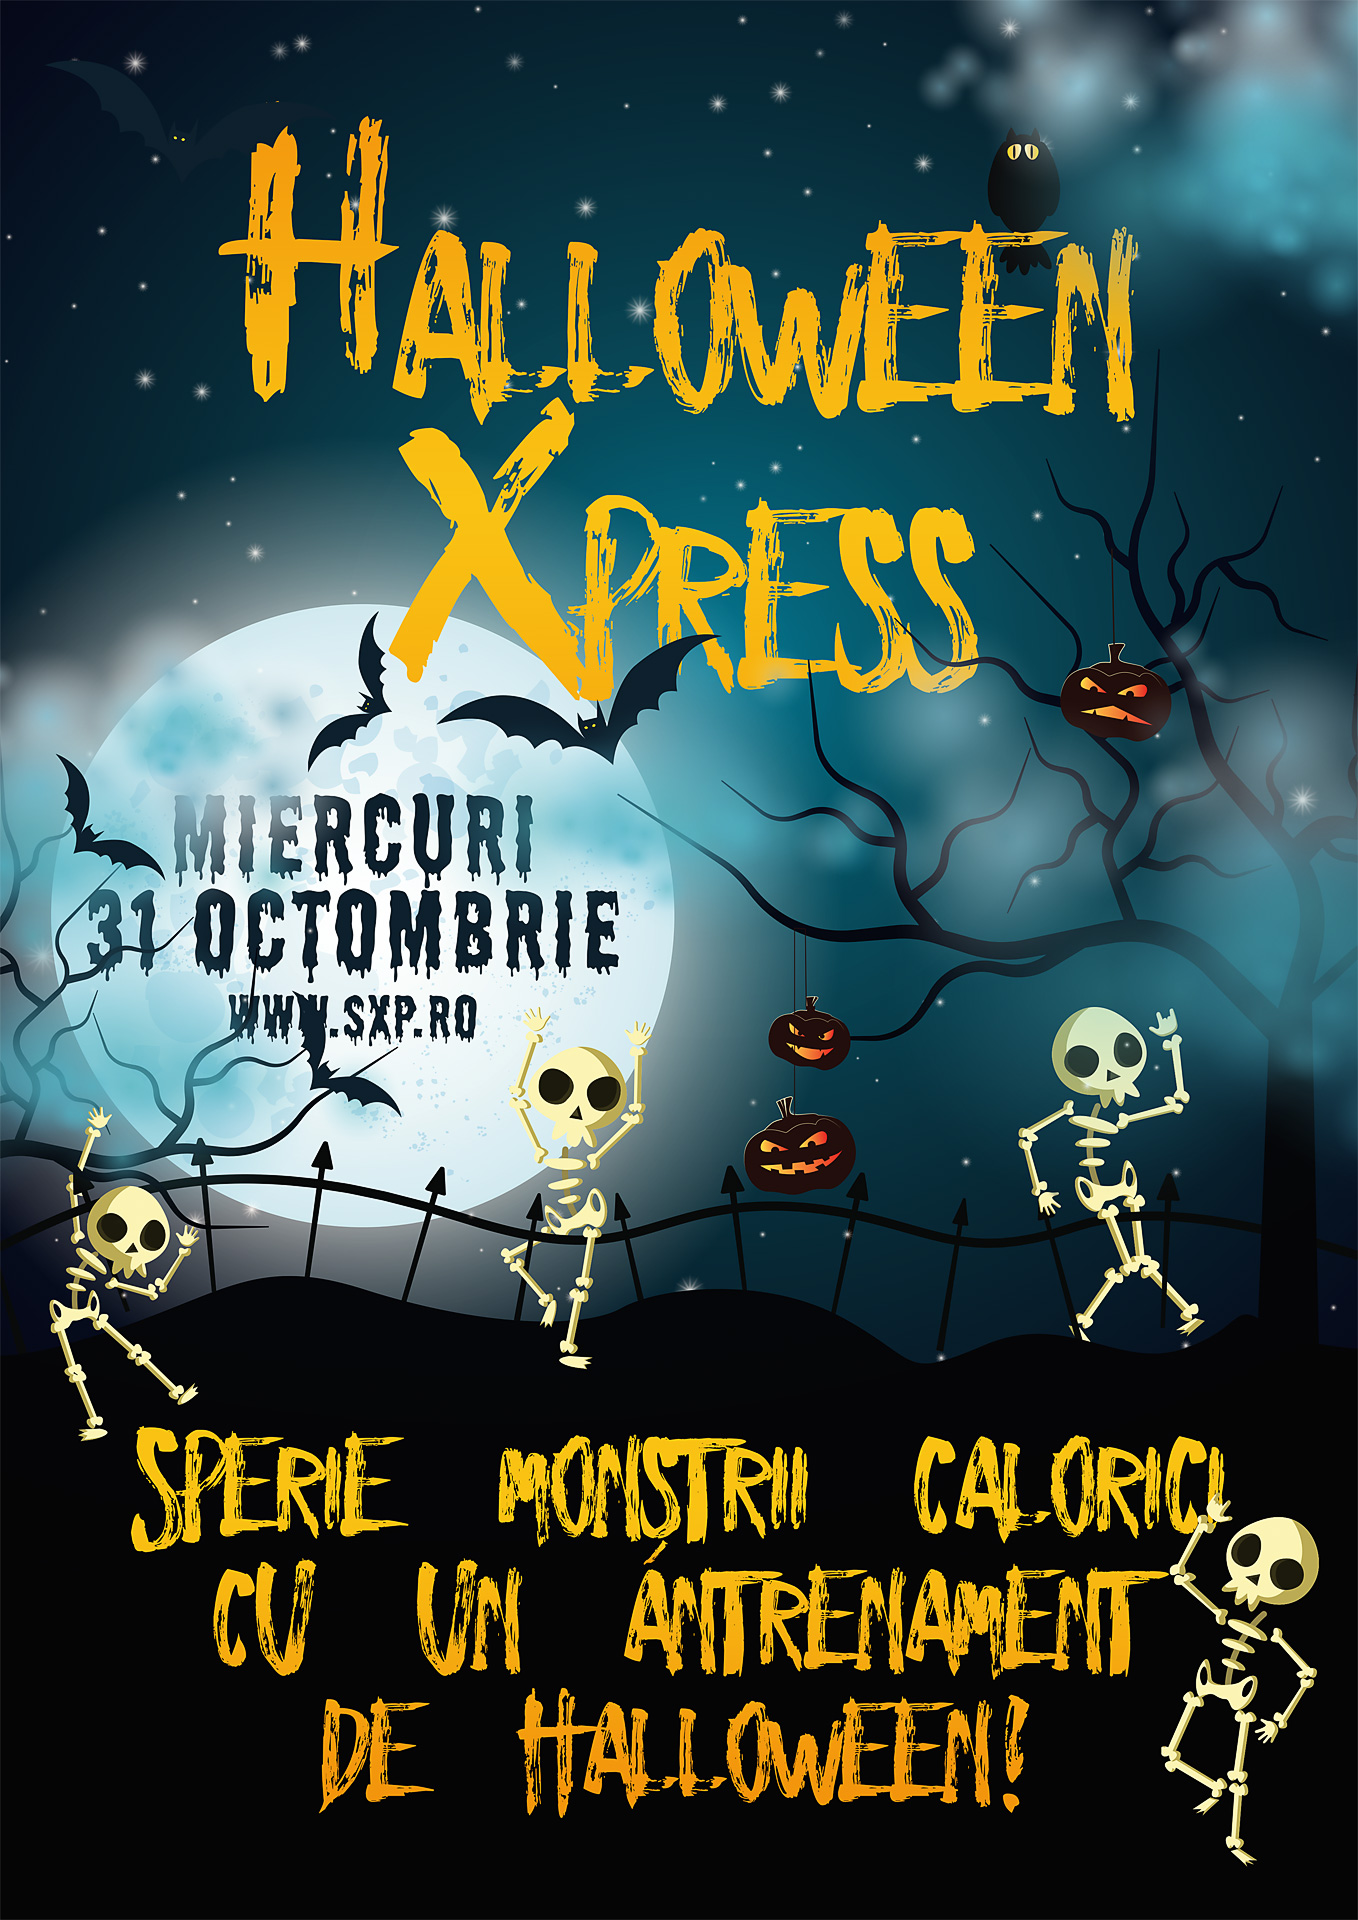 HalloweenXPress